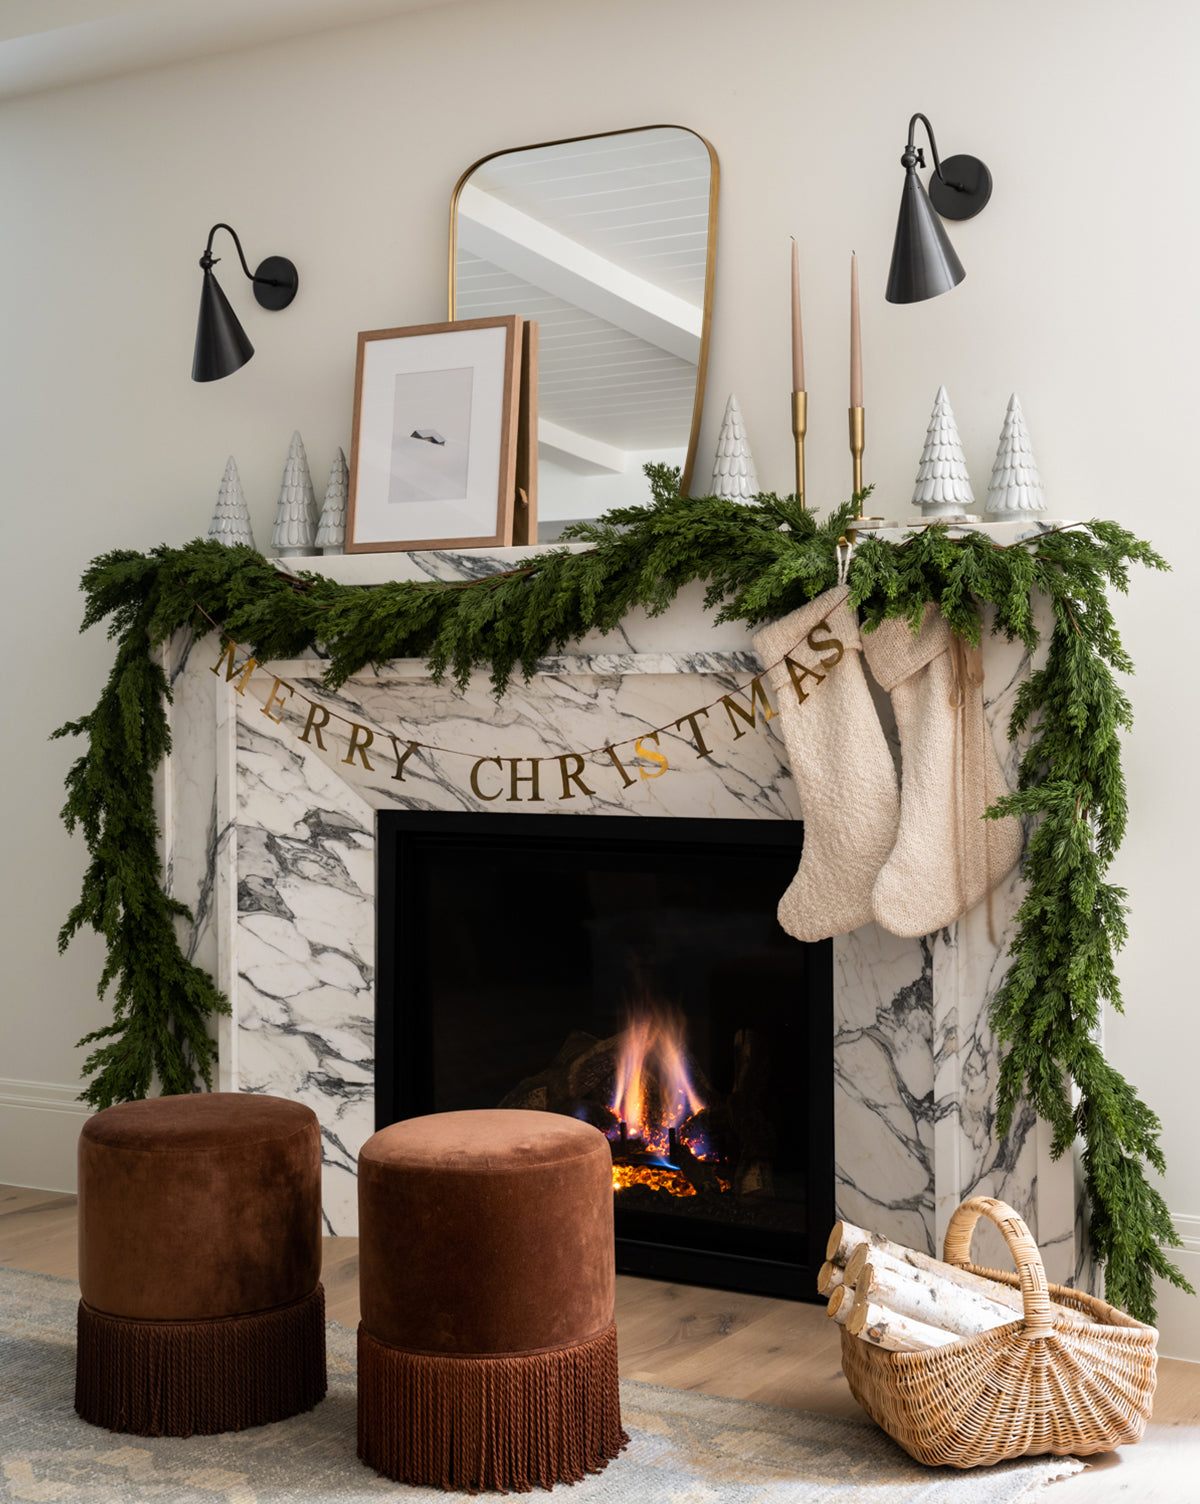 French country style Christmas mantel with garland, white stockings, banner, and basket of birch logs - McGee & Co.